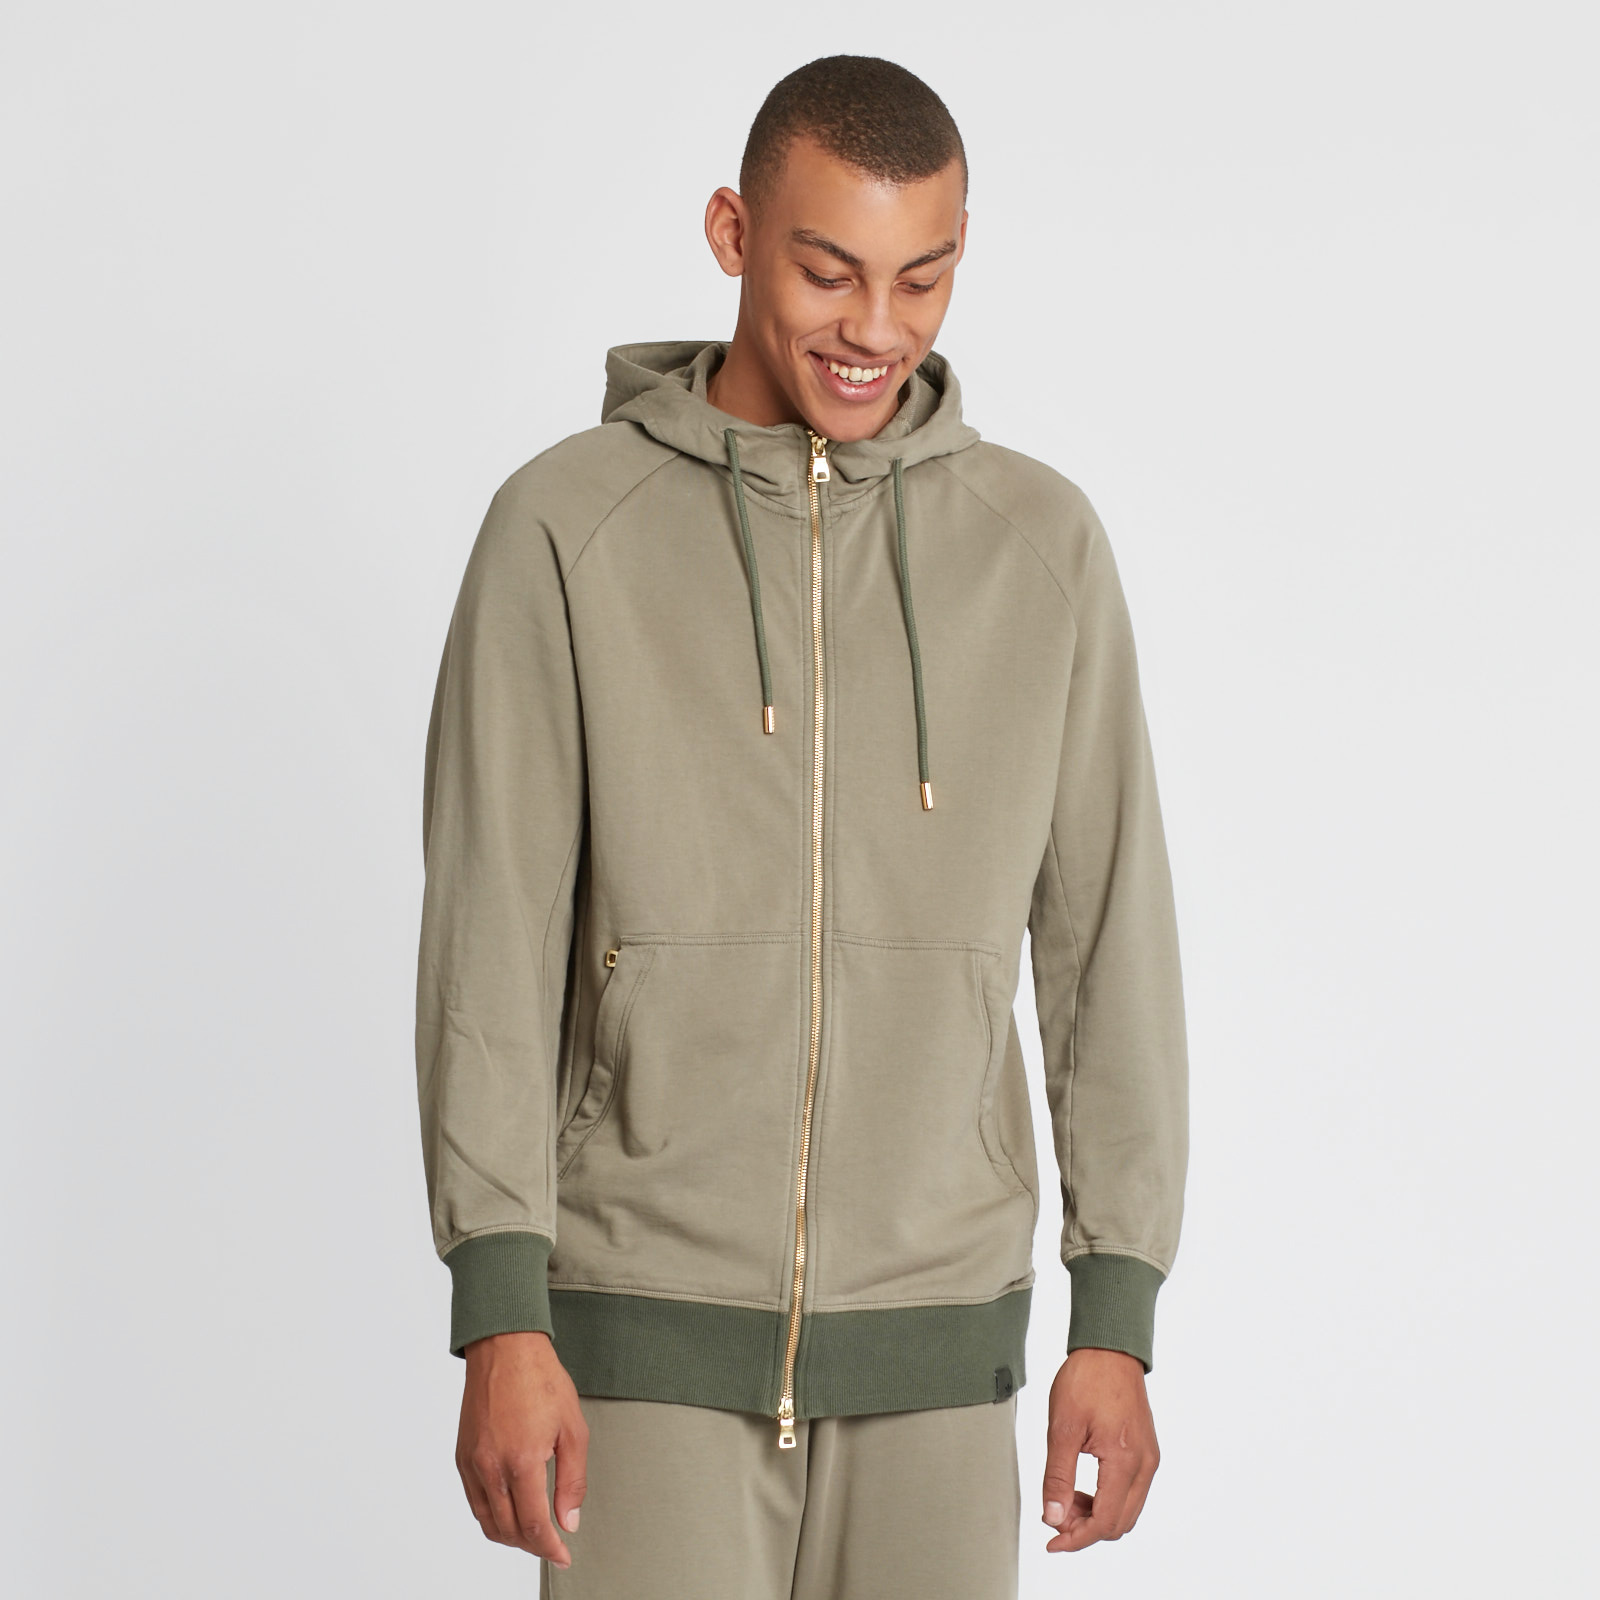 Adidas Originals x Oyster Holdings XBYO Full Zip Hoodie